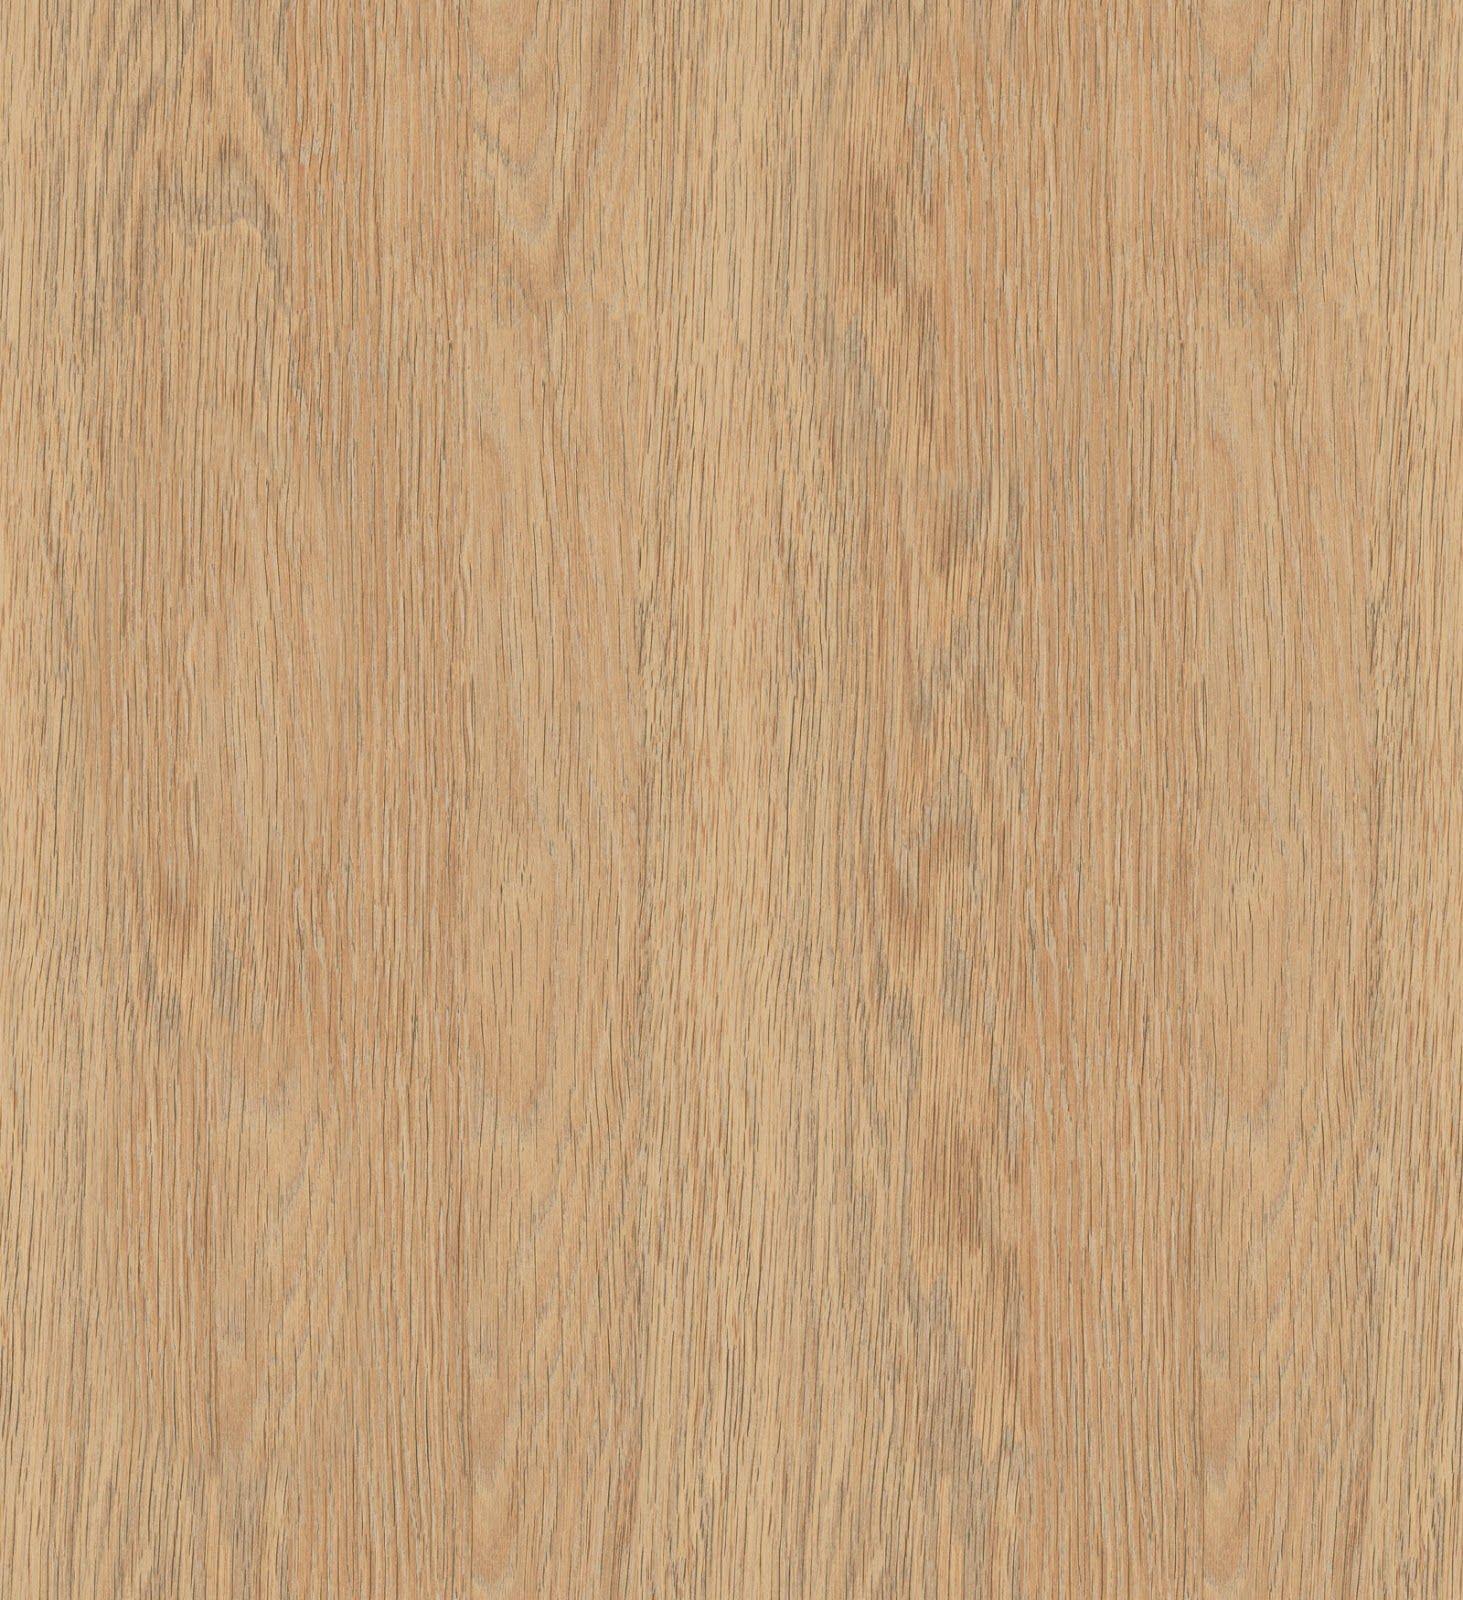 Oak Wood Texture Seamless